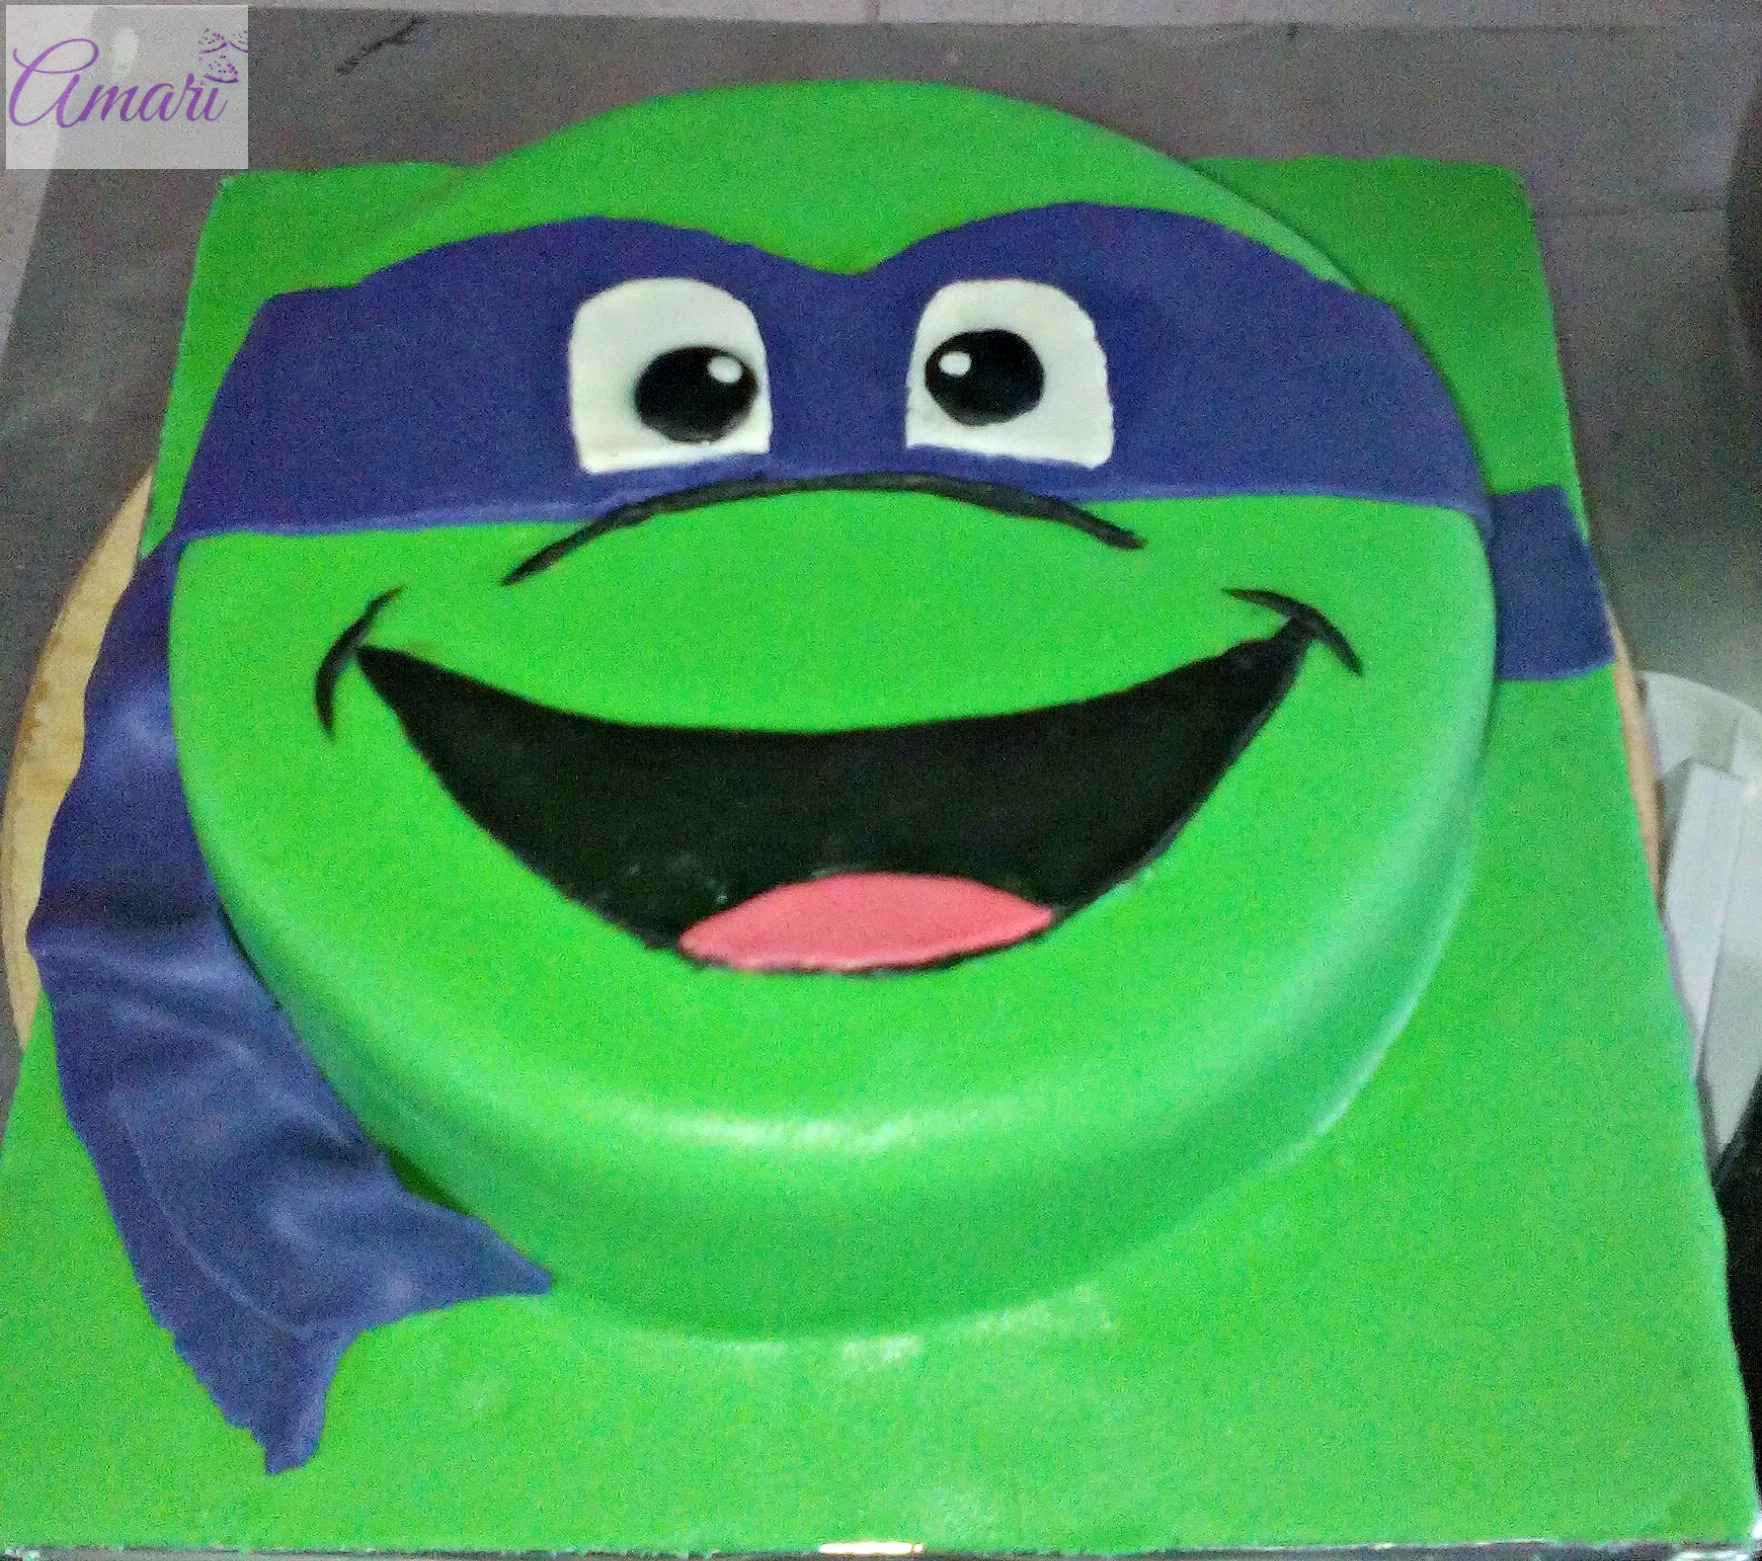 Enjoyable Teenage Mutant Ninja Turtle Birthday Cake Tutorial Amari Baking Birthday Cards Printable Riciscafe Filternl